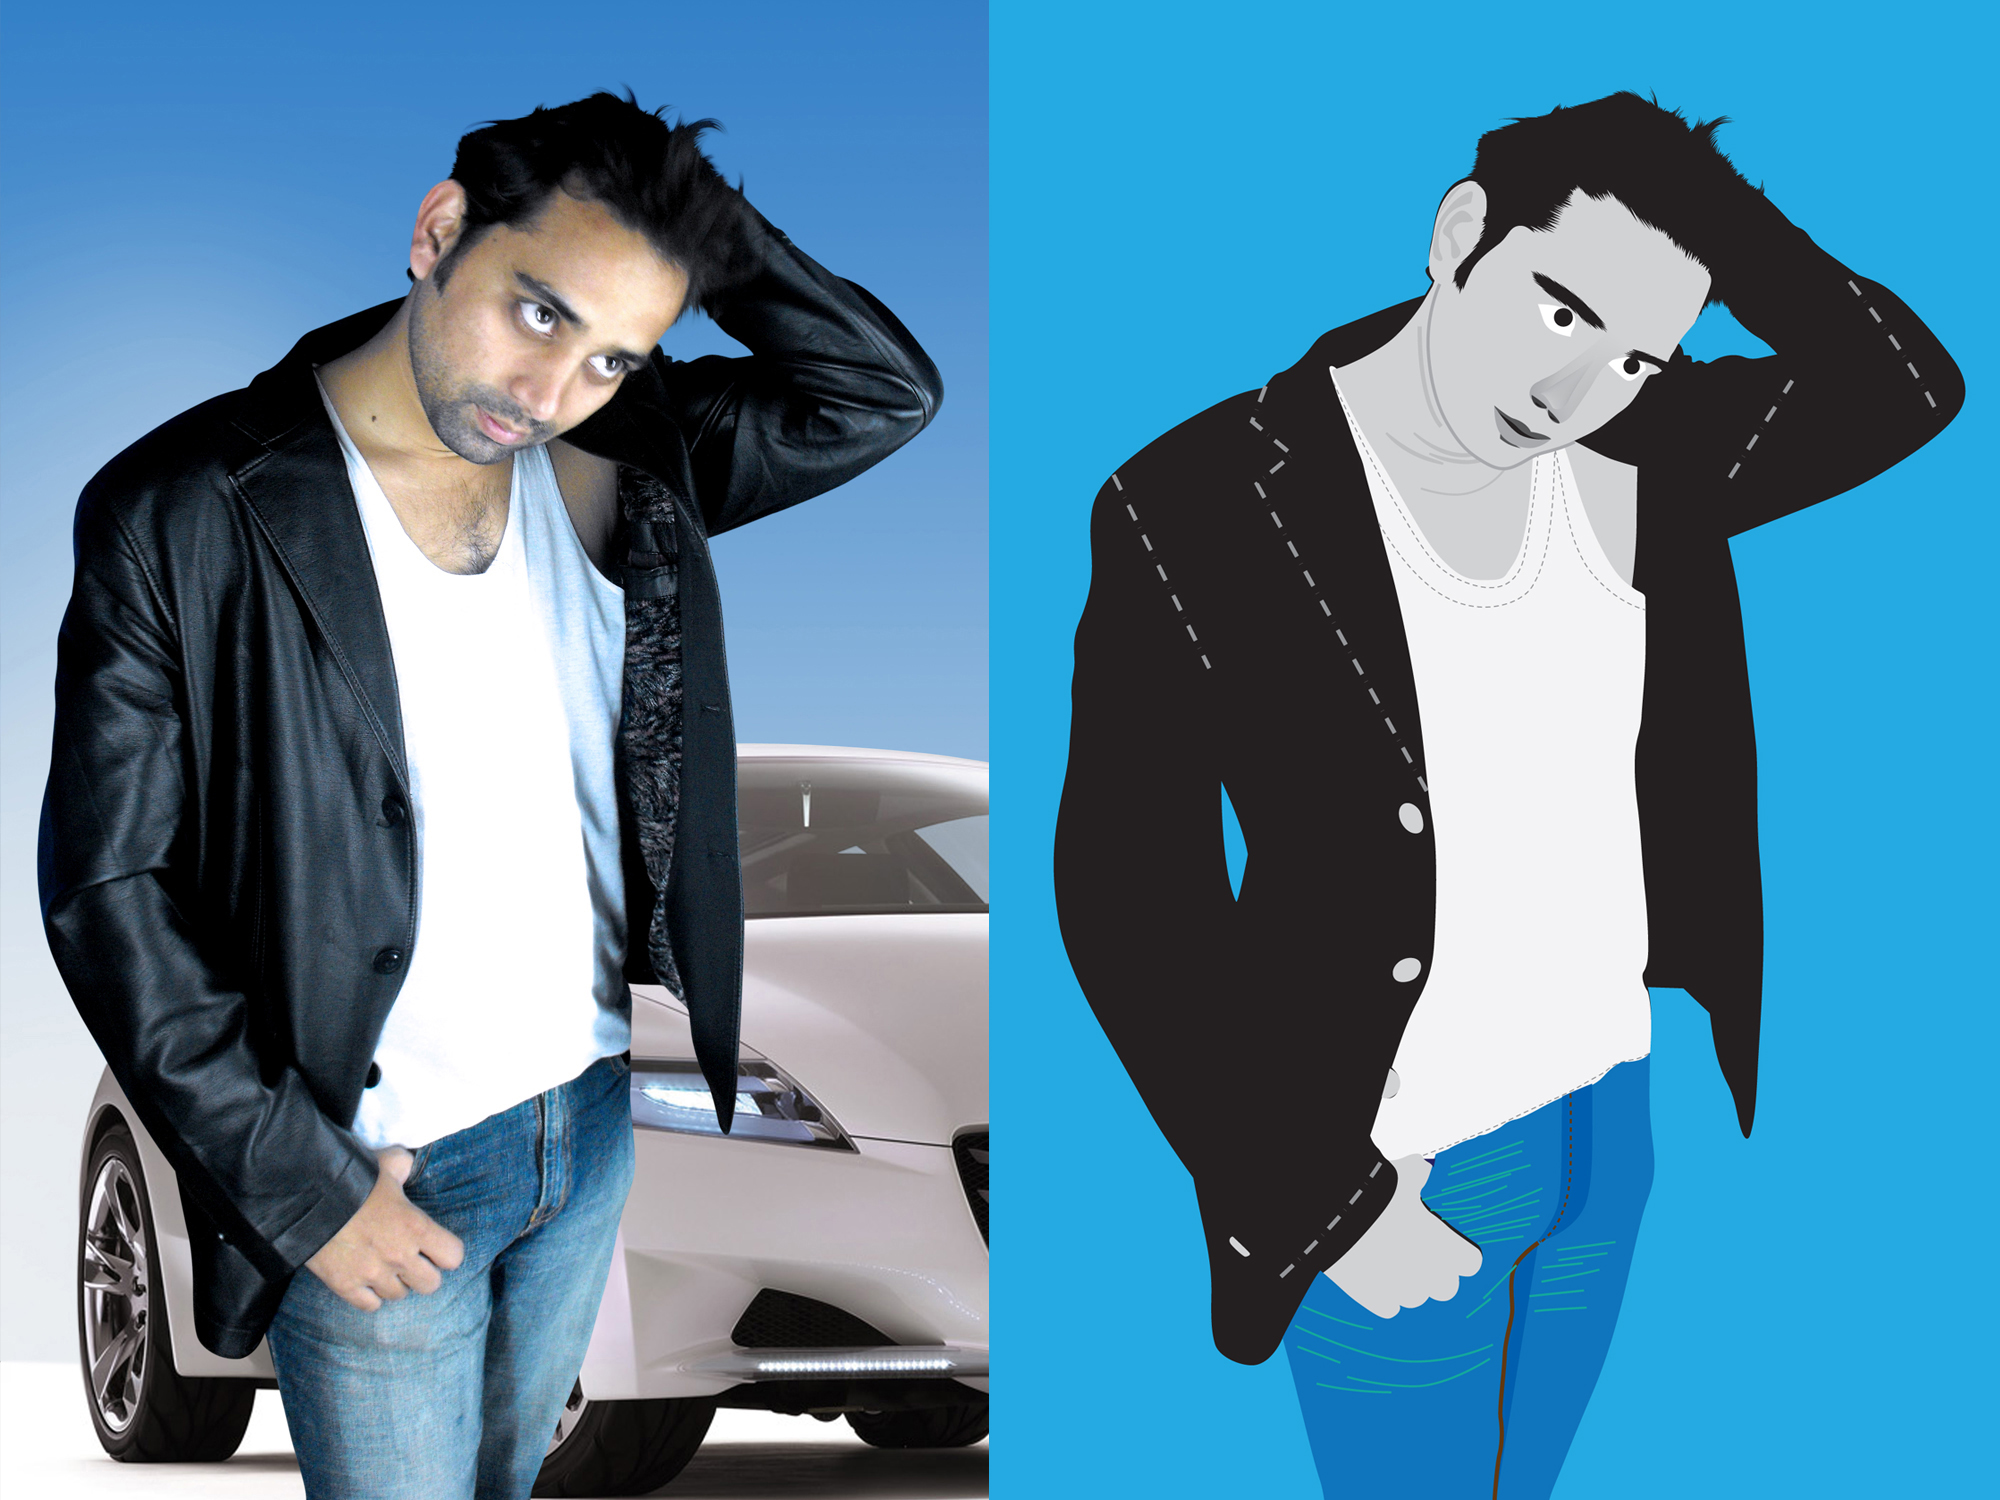 Volume Image Clipping Path Service Starting at only $ 0.15